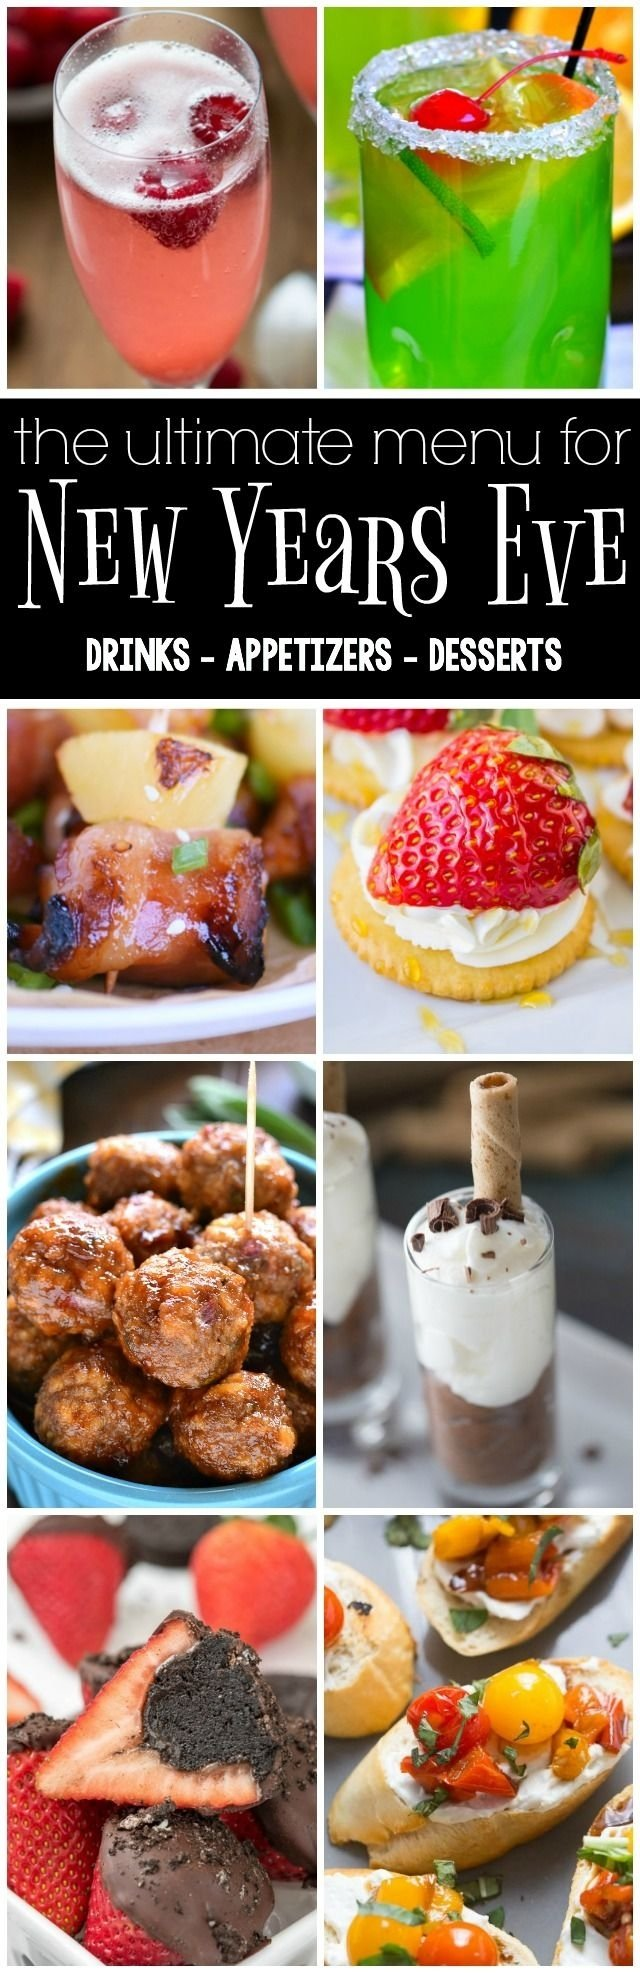 10 Ideal New Years Eve Desserts Party Ideas 29 best new years eve images on pinterest petit fours biscuit 2020